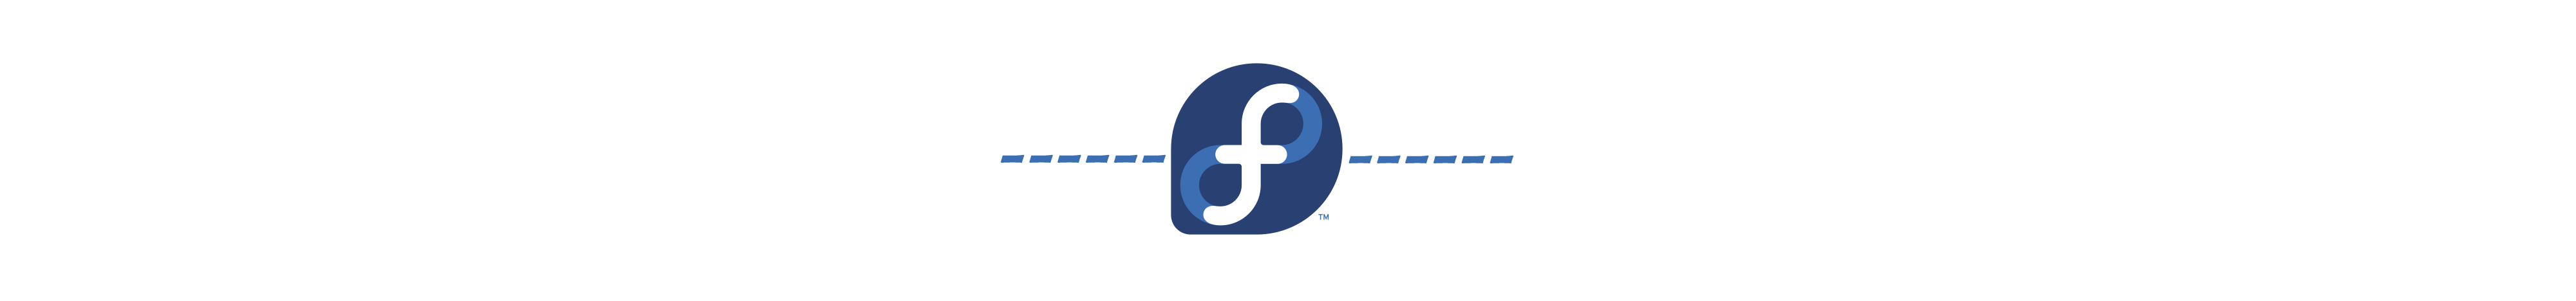 File:Footer.png